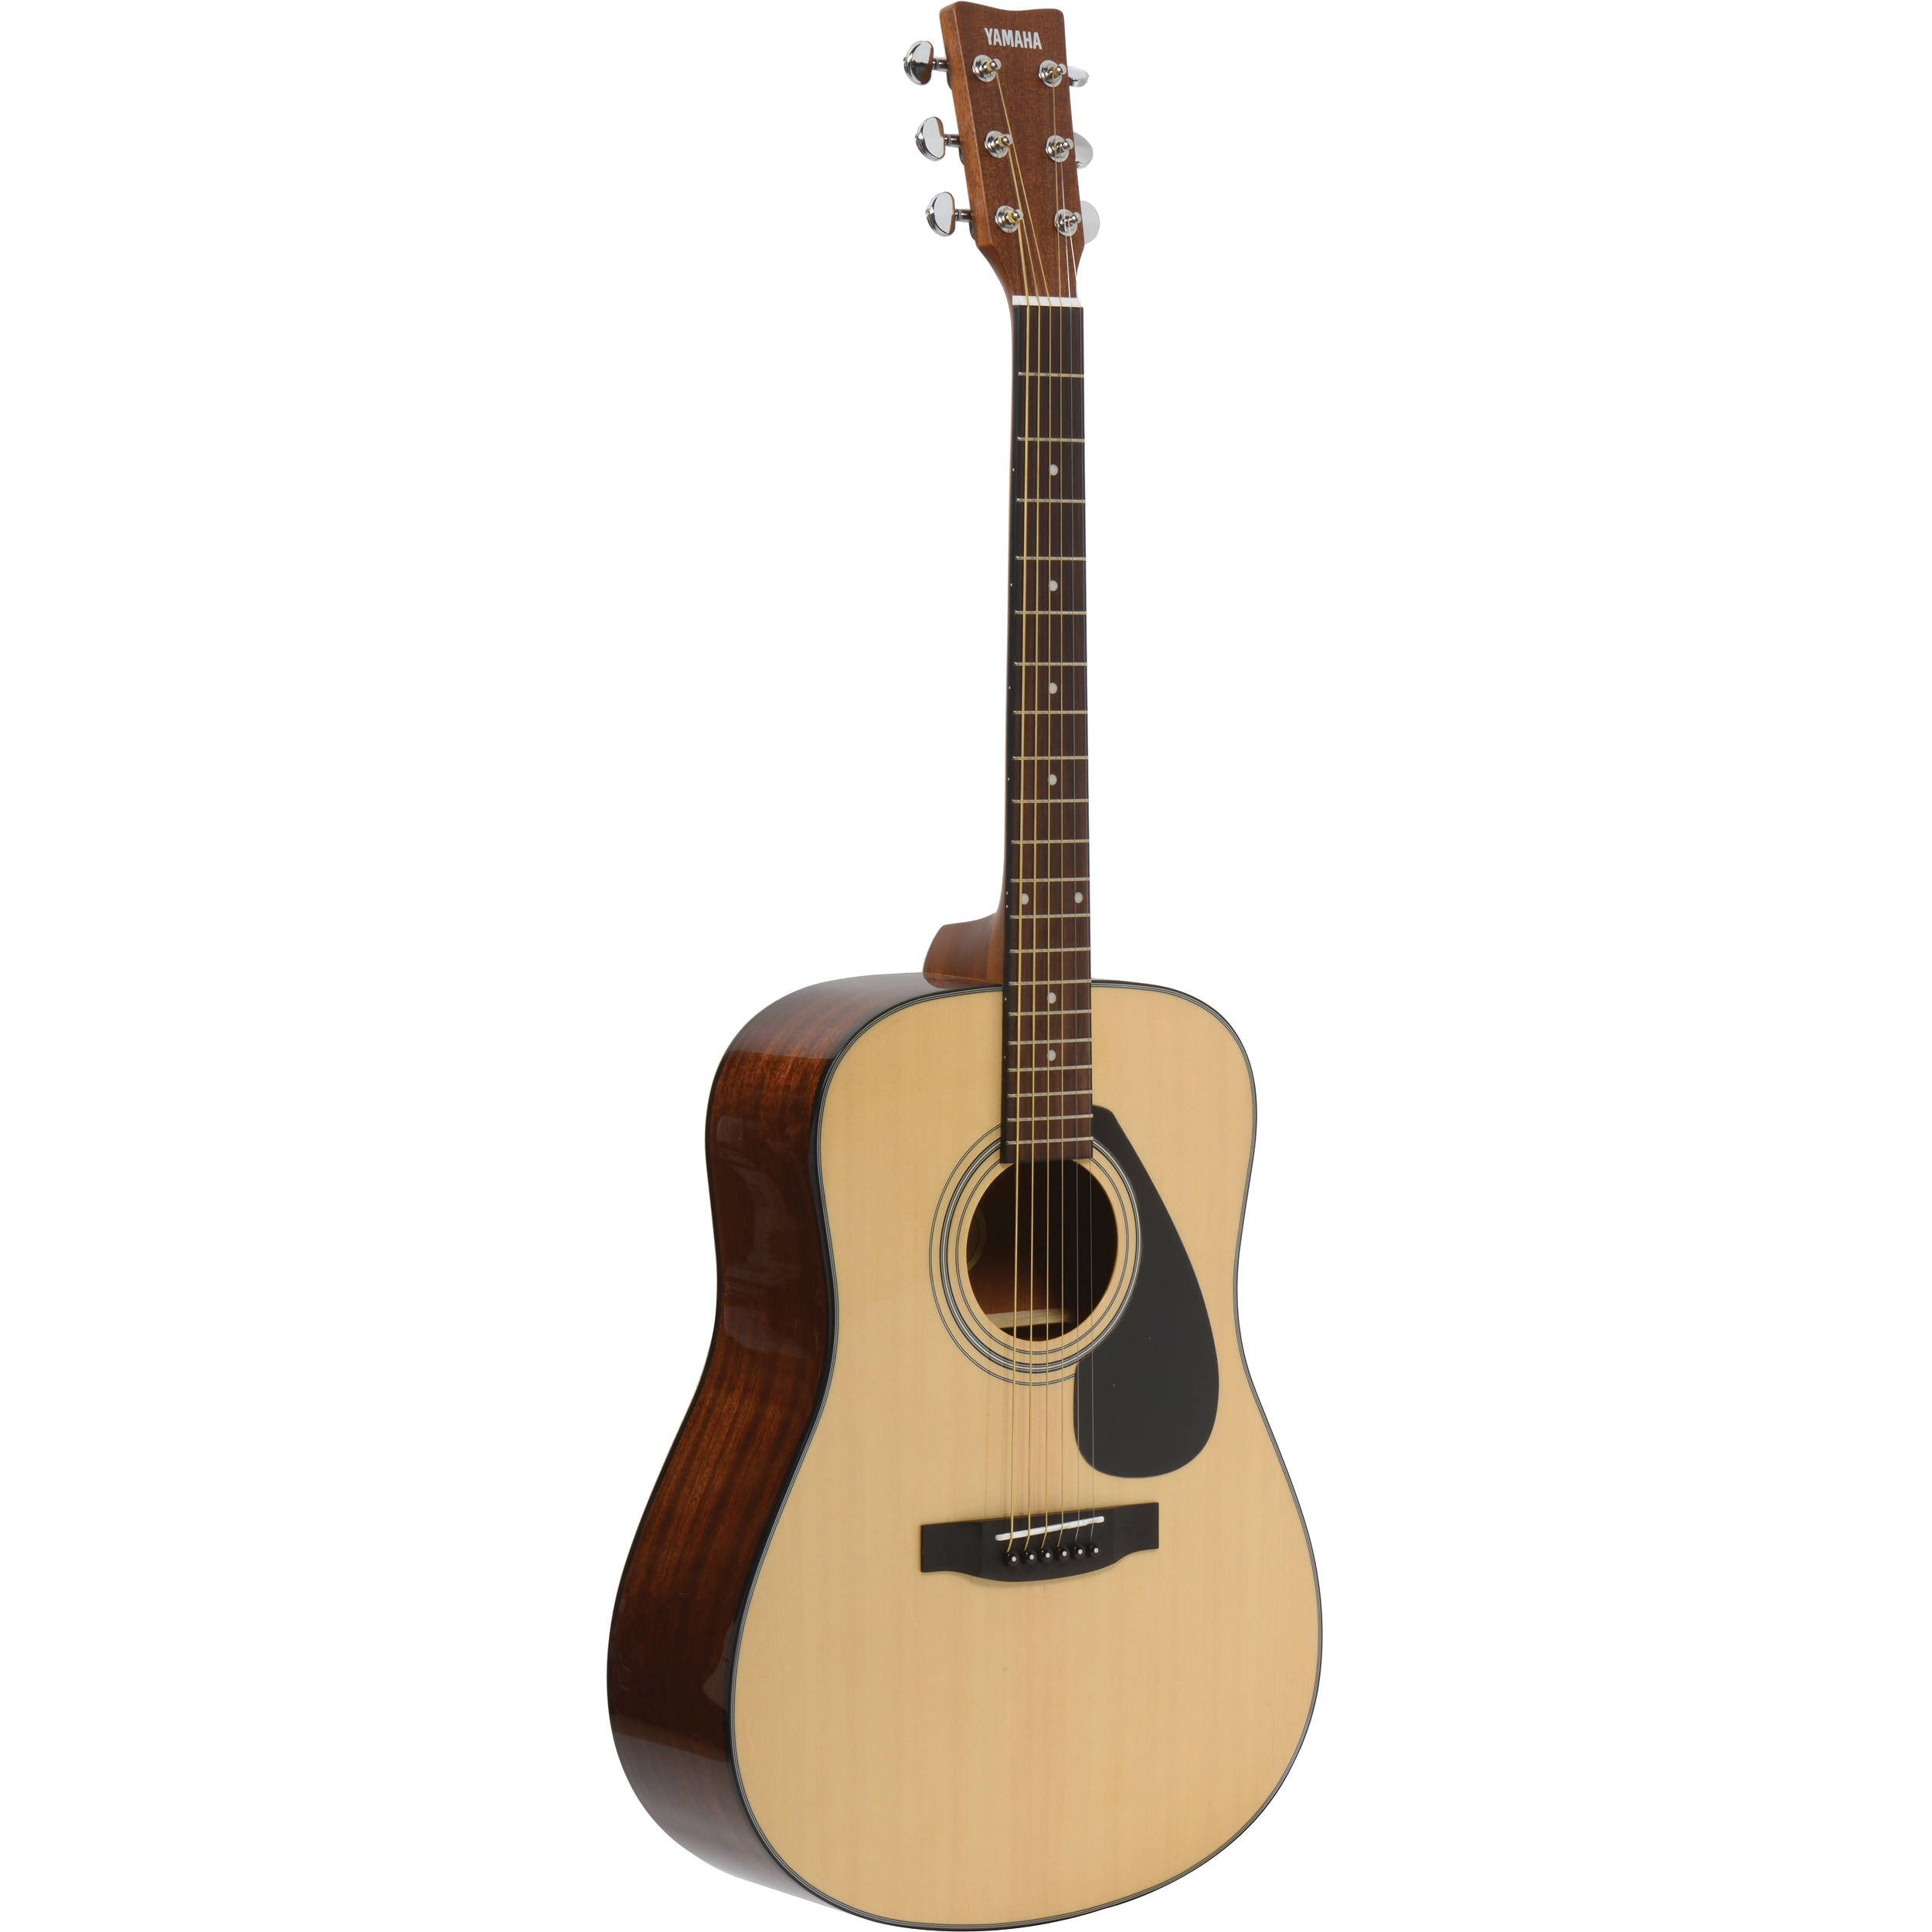 Yamaha Gigmaker Acoustic Guitar Review